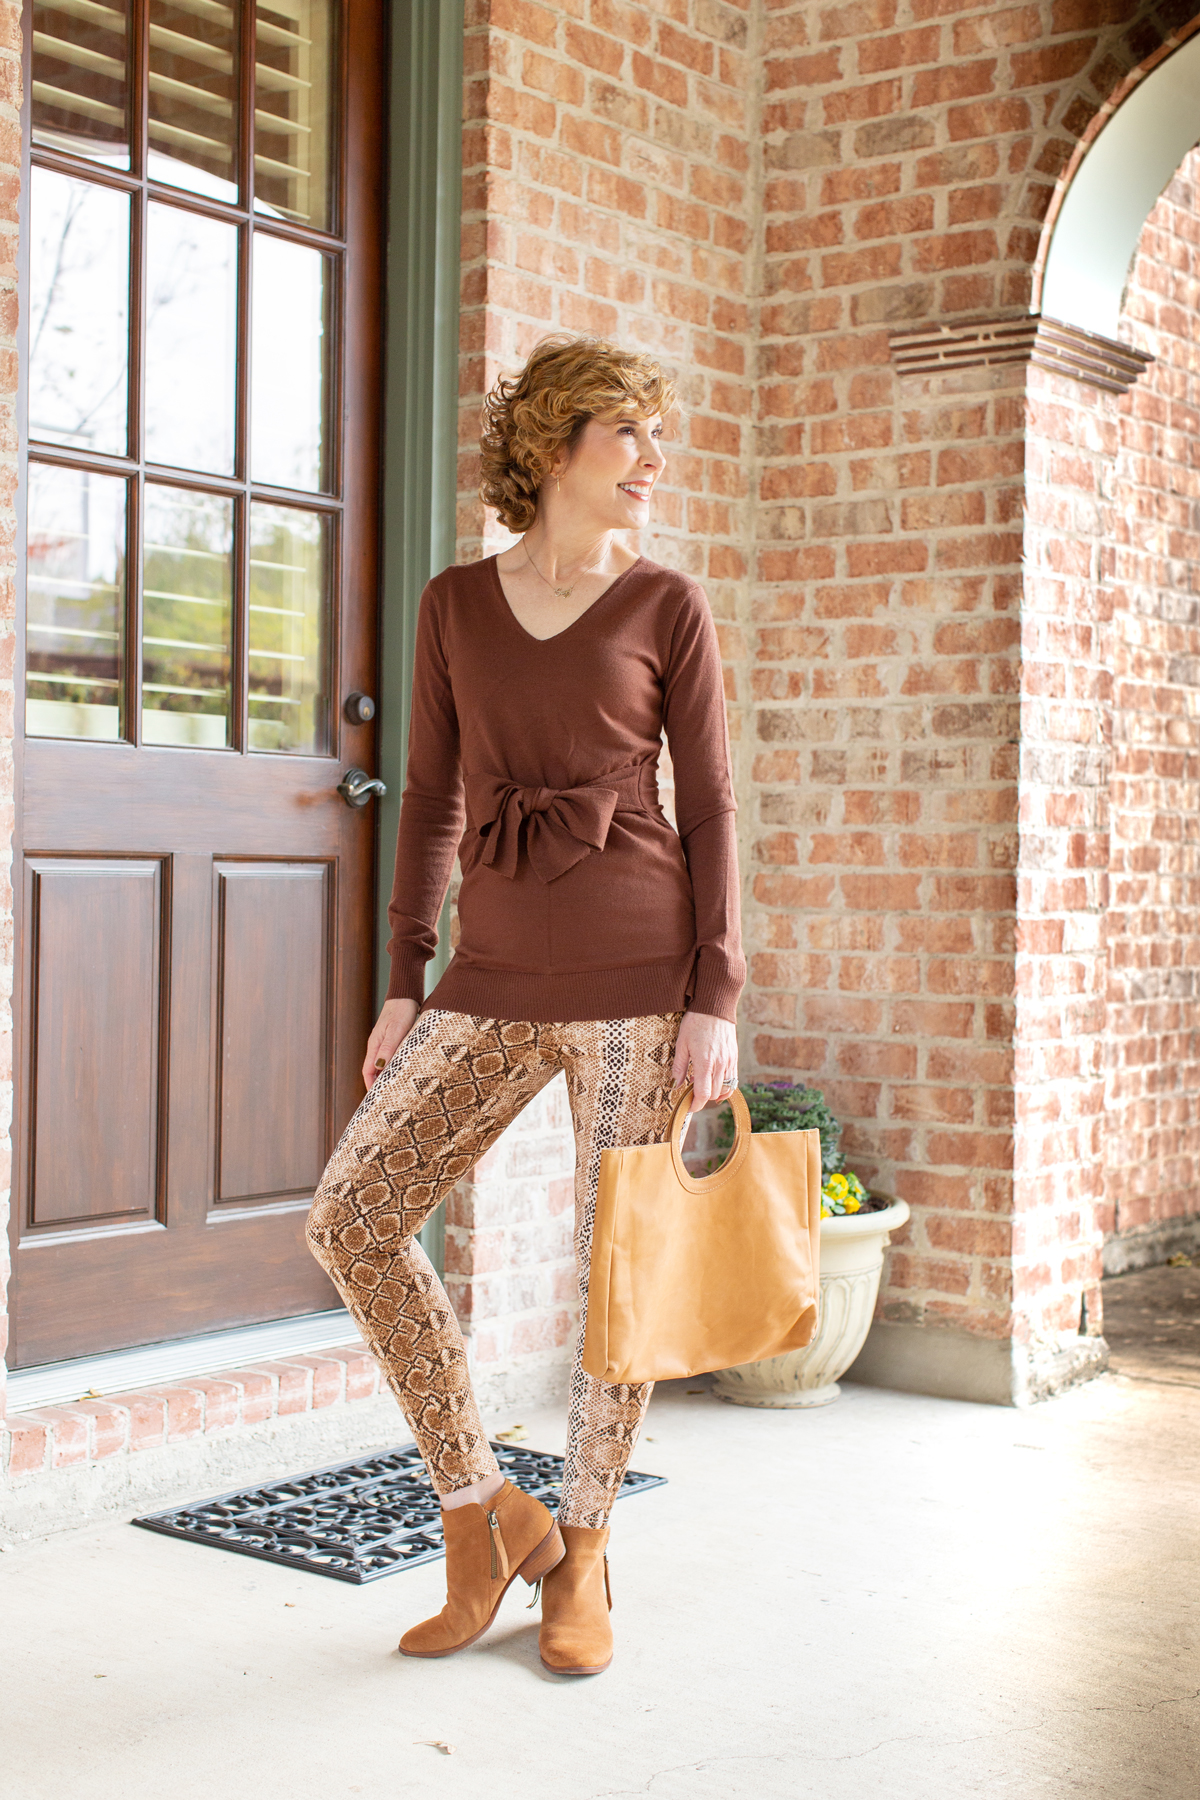 woman wearing a brown sweater and snakeprint leggings standing outside a house